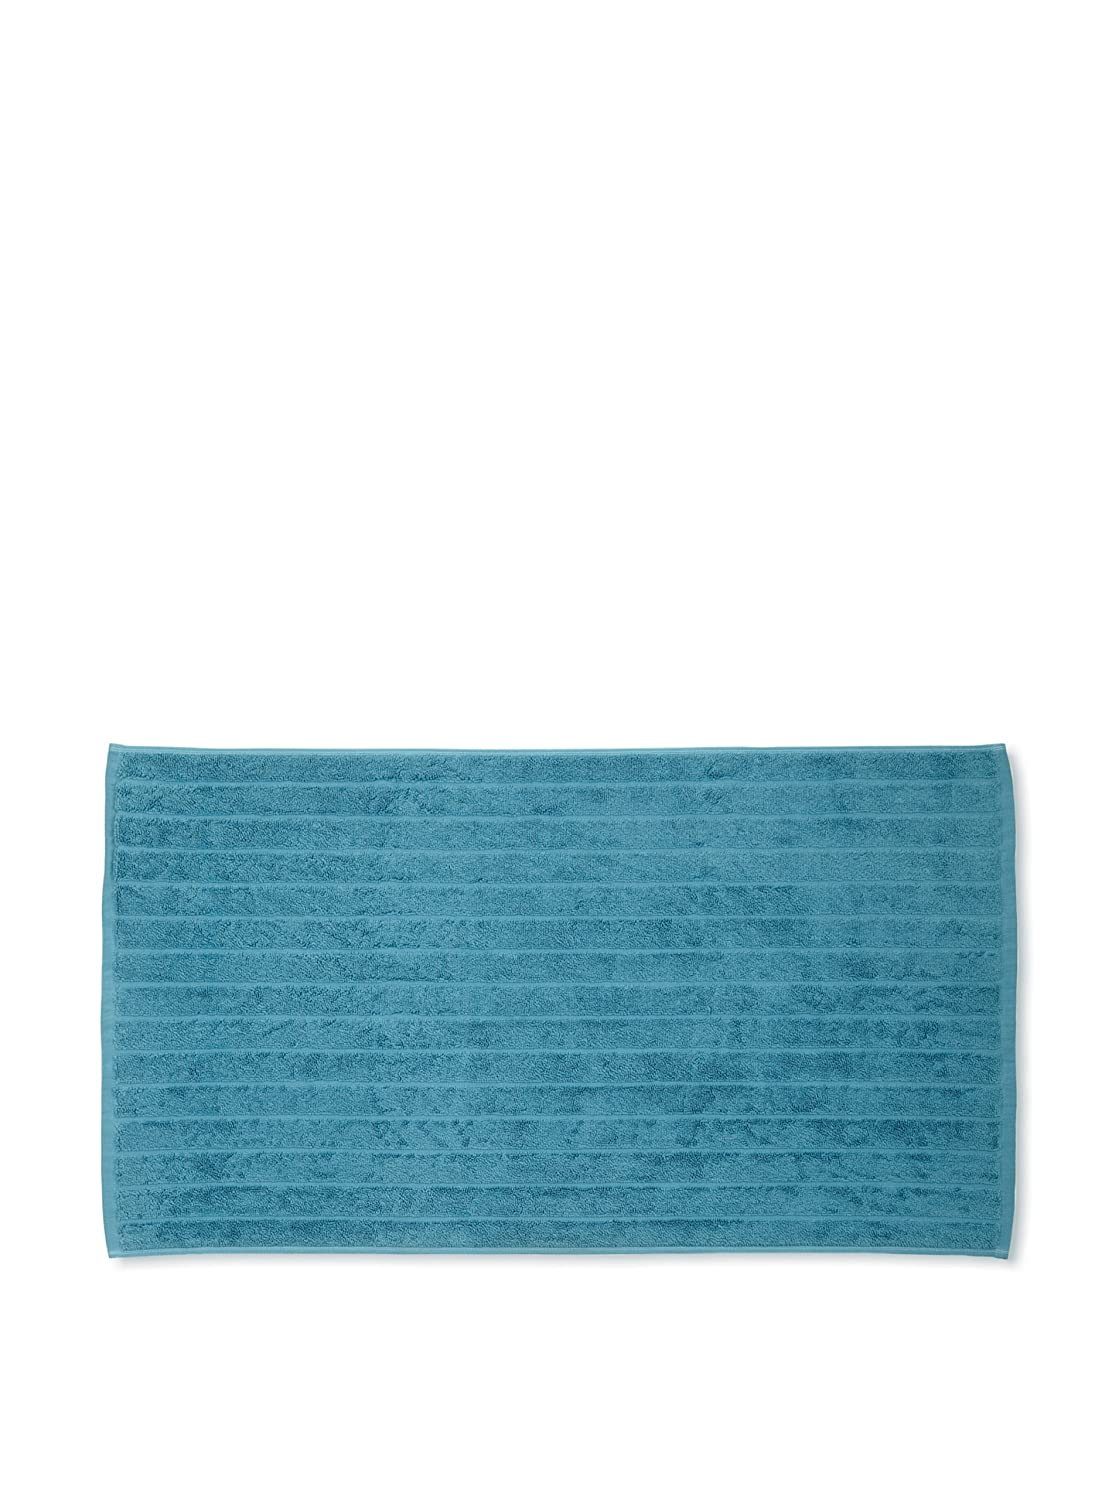 Christy 100% Cotton Luxury 1000GSM Large Bath Mat Elegant Textured Bathroom Accessories 50 x 90cm (Icicle Blue)